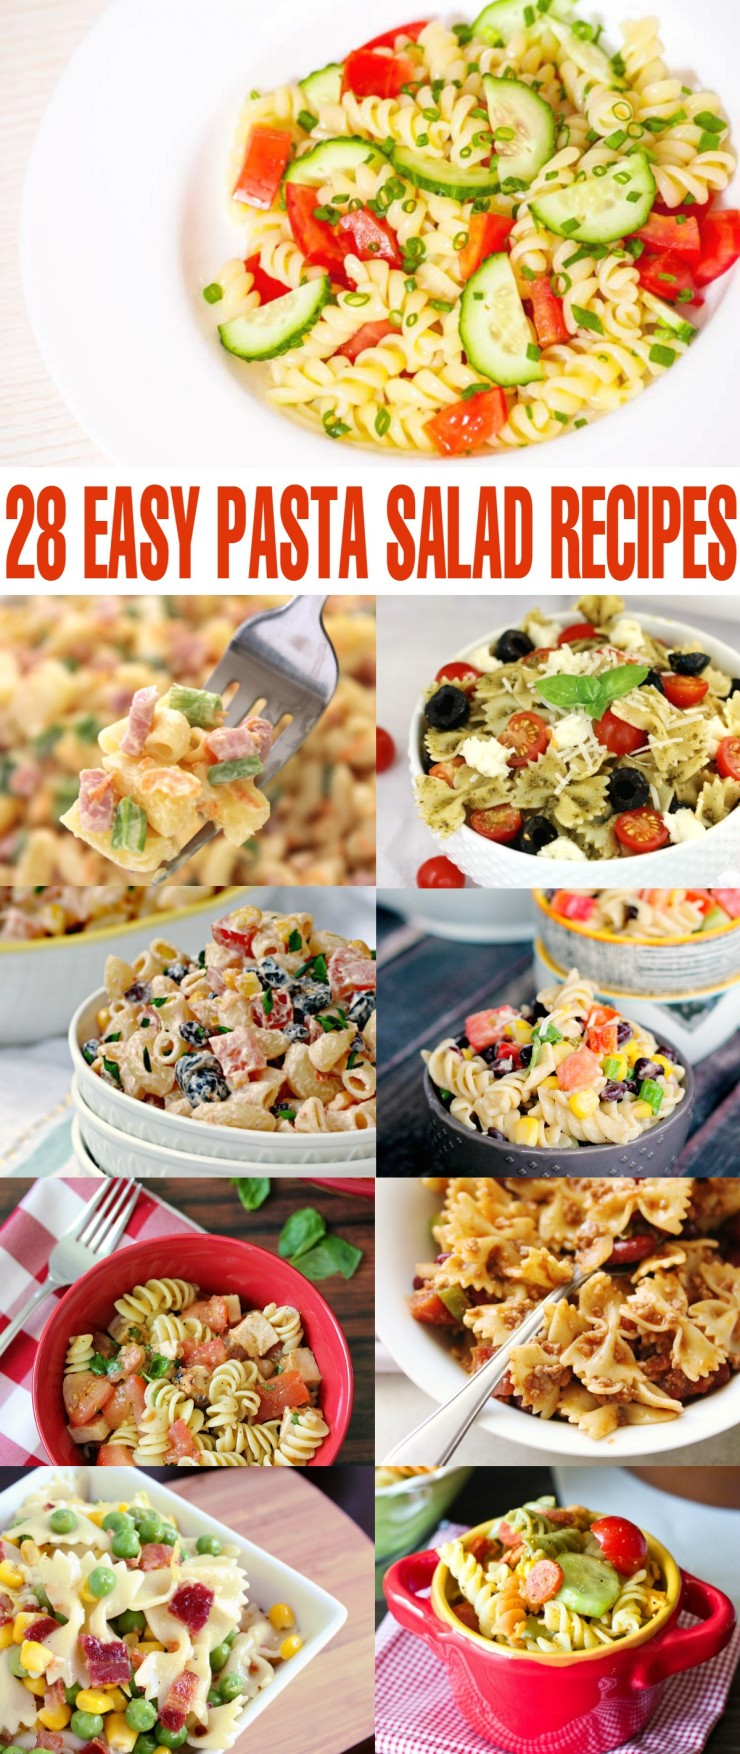 Pasta salad are perfect for pairing with your favorite main dishes for a perfect side dish with endless possibilities for new flavour combinations and ingredients. Here are some of my favourite quick and easy pasta salad recipes: